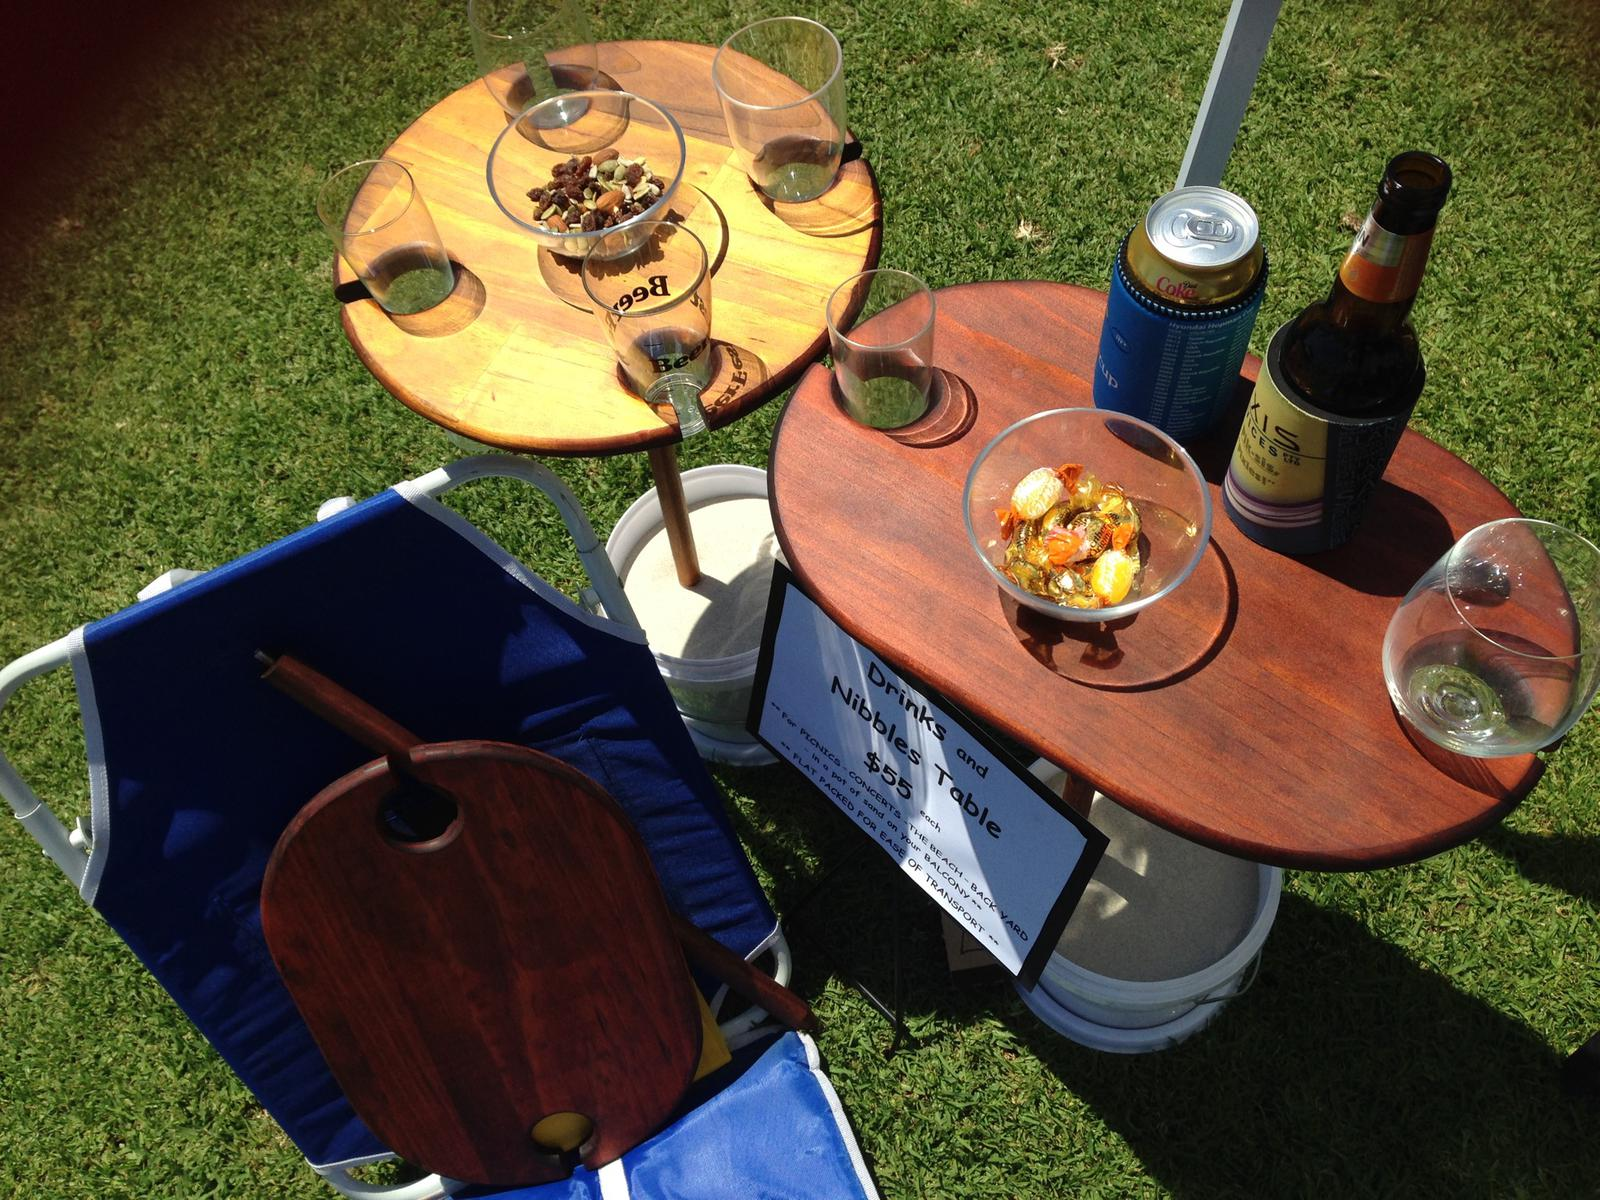 Picnic-Concert-Beach-Backyard Drinks & Nibbles Table